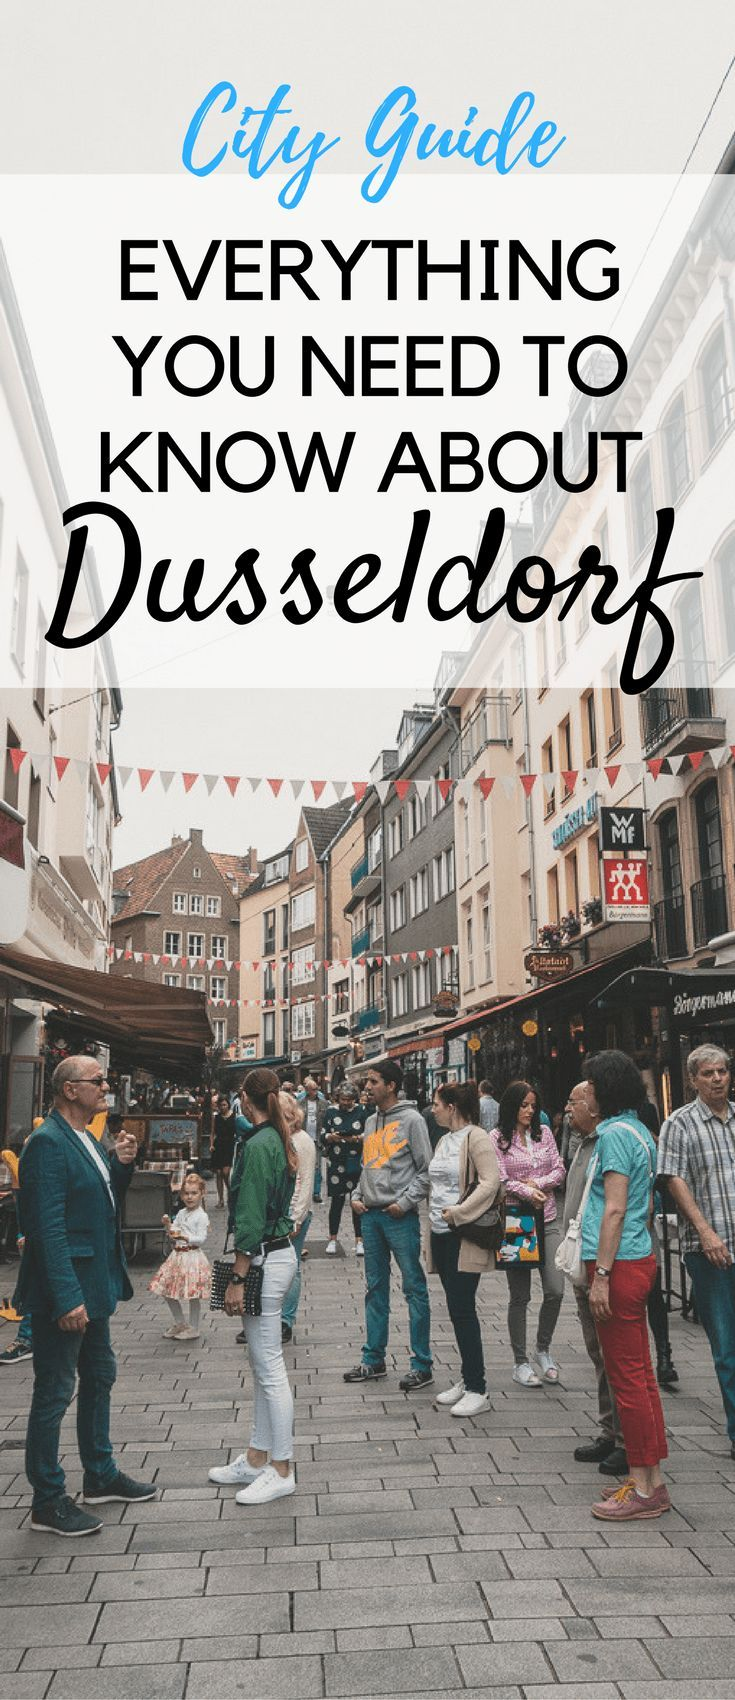 If you're going to Dusseldorf, jump right into the best things to do, see, and eat with my city guide. Find out where to stay, eat, drink, and what to do. Click through to find it all out!